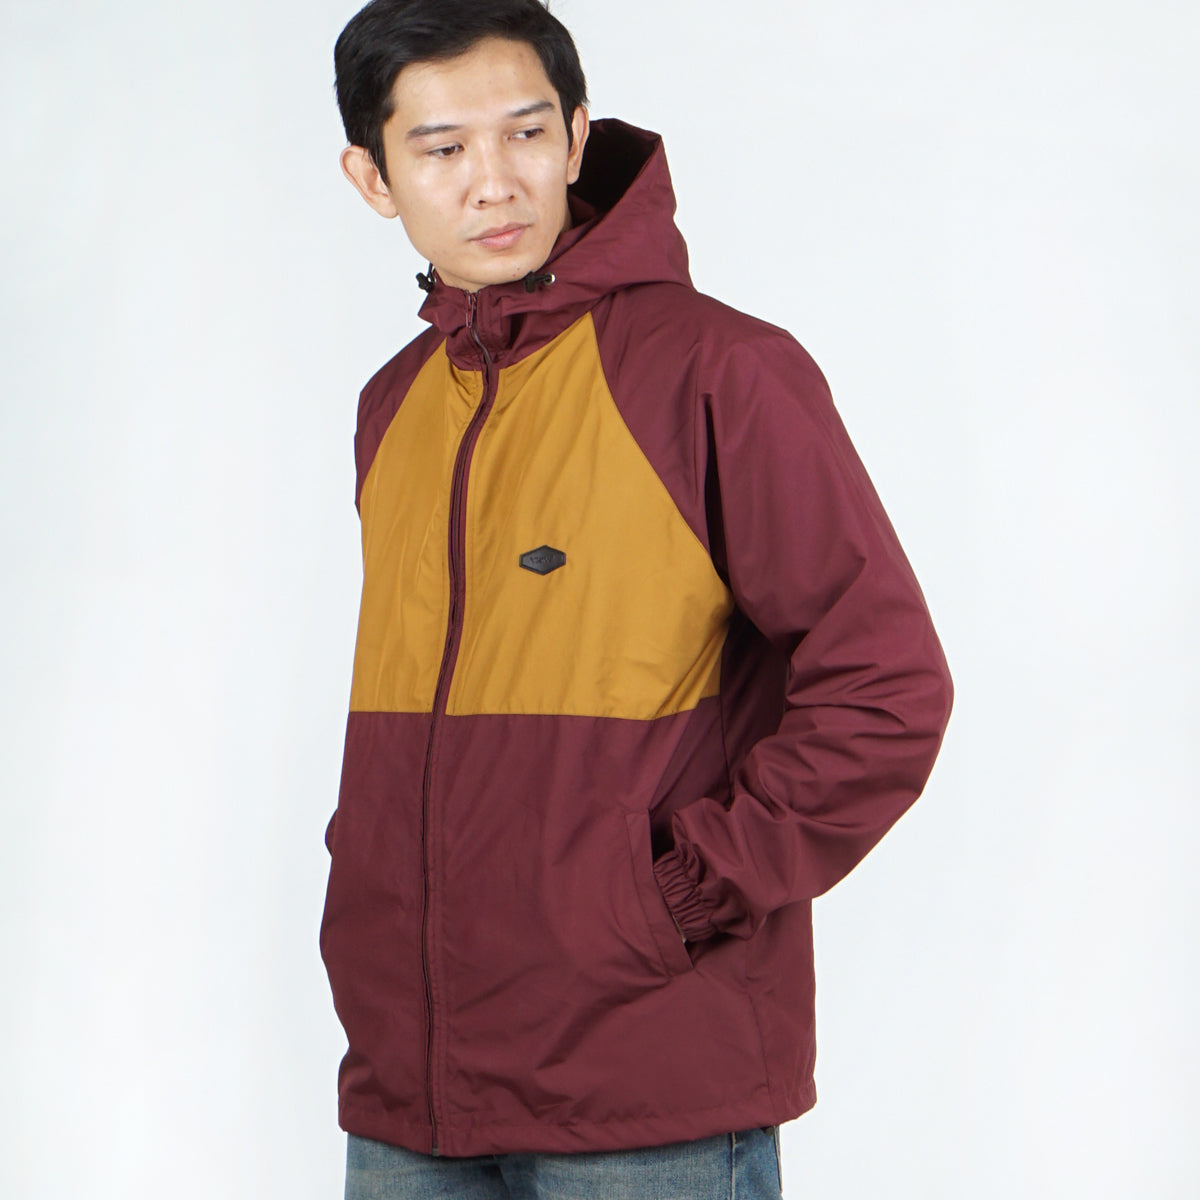 Visco Windbreaker Jacket Maroon Mustard